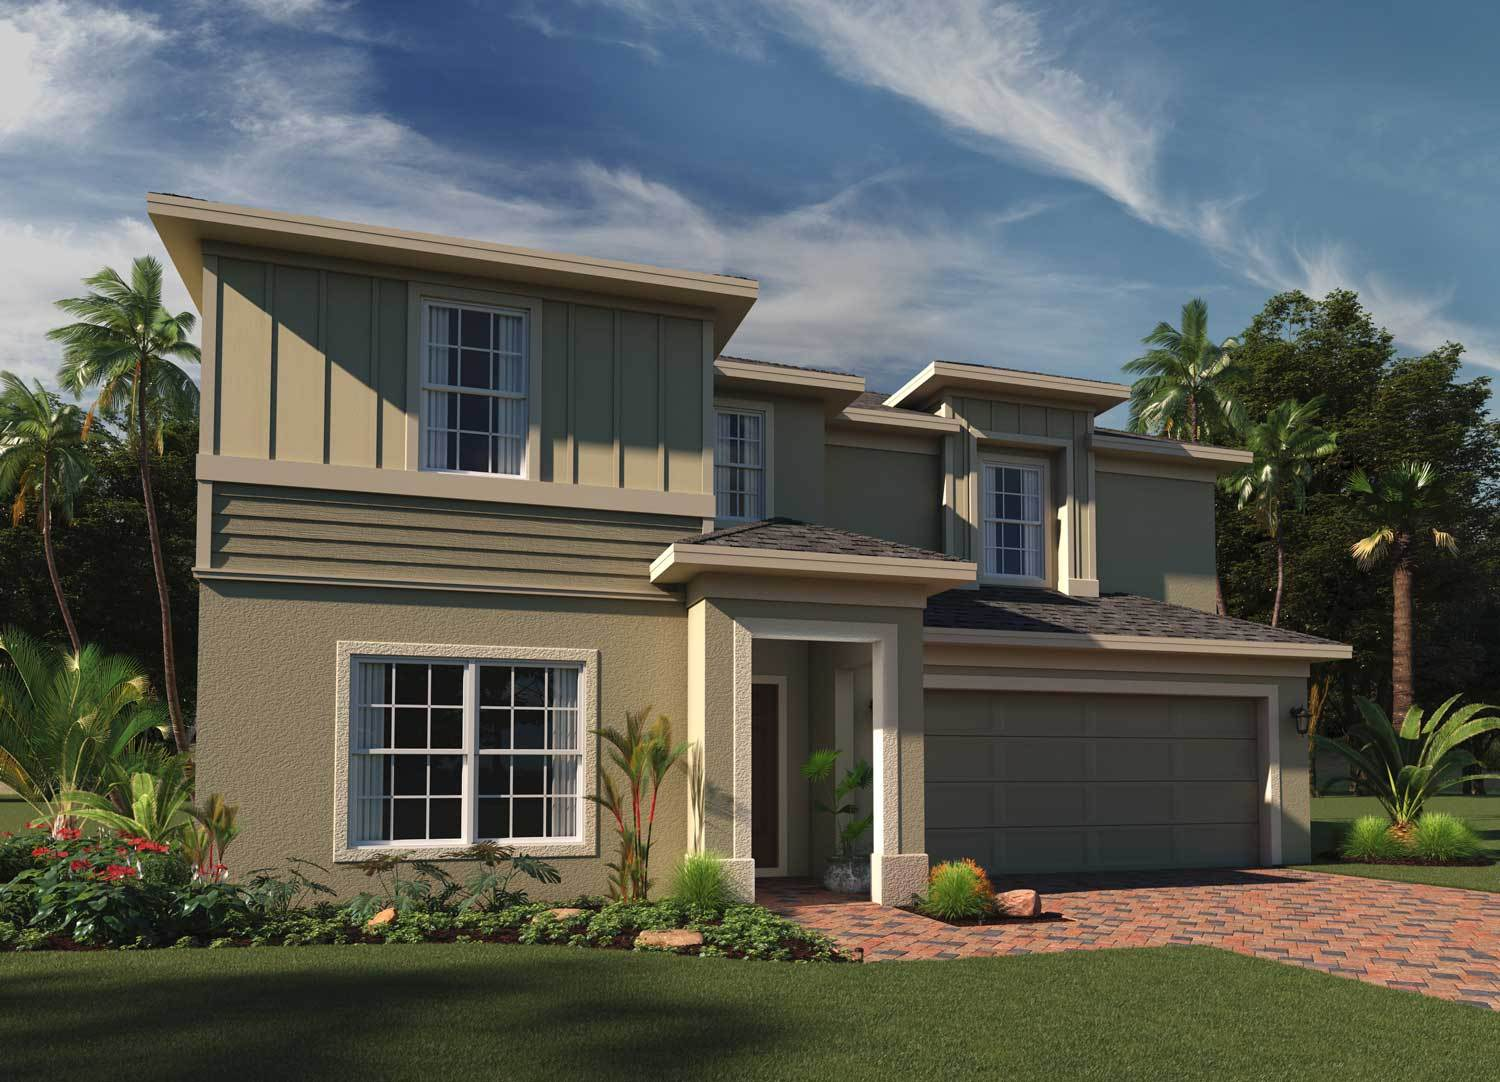 Single Family for Sale at Windsong - New Castle 26026 Meadow Breeze Lane Leesburg, Florida 34748 United States